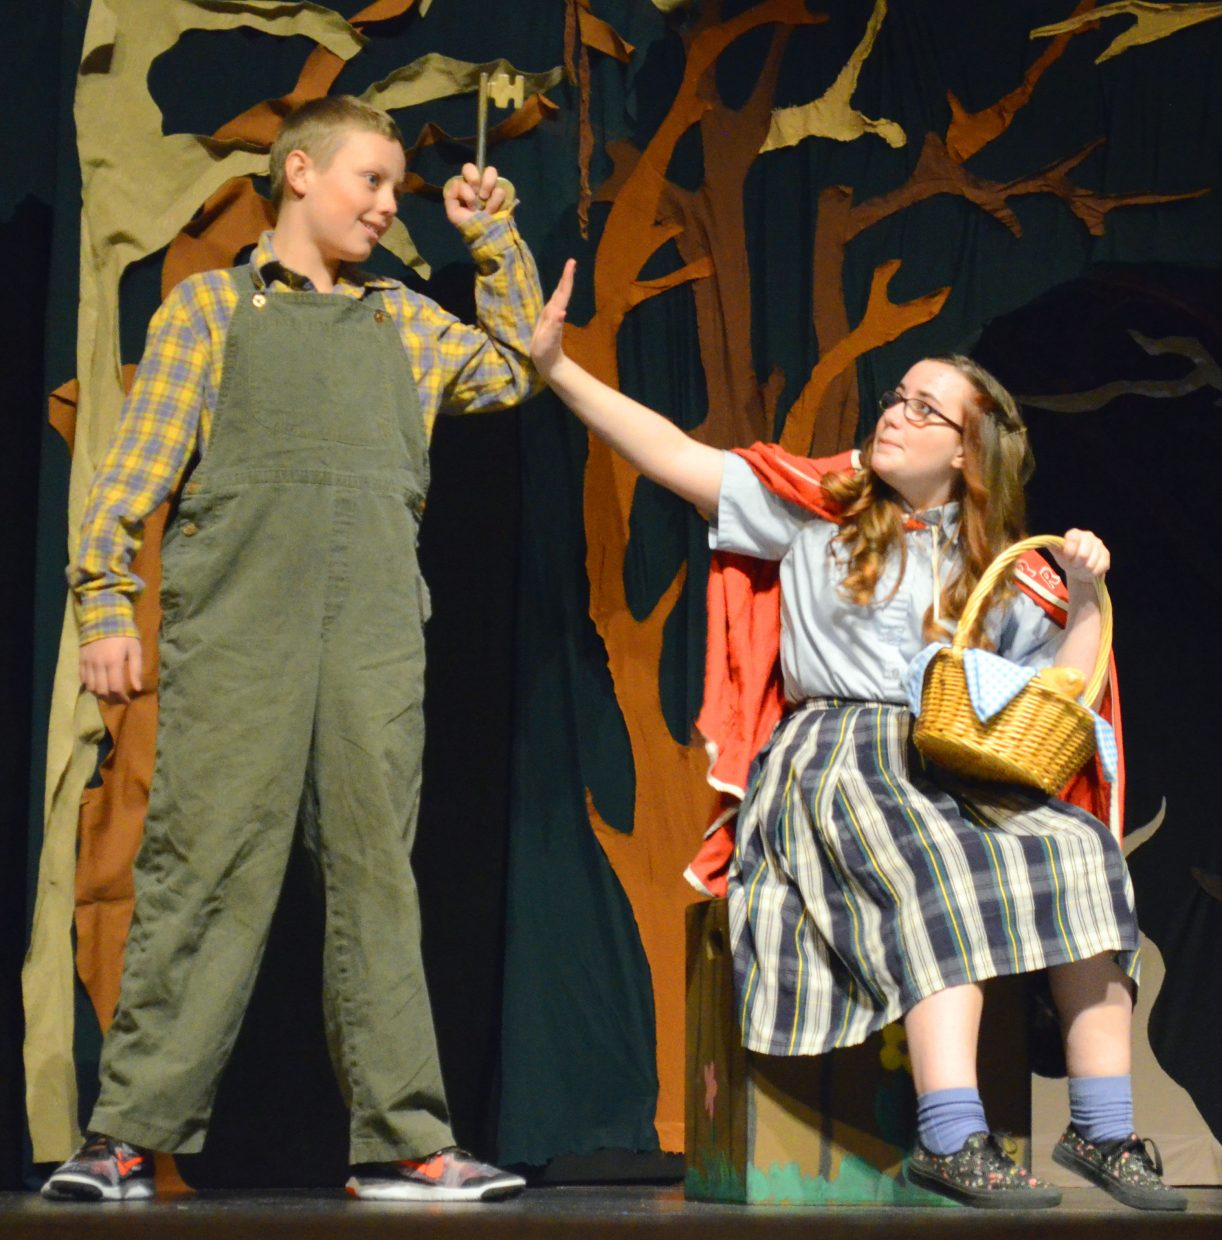 "A helpful locksmith (Ryan Peck) may have the key to the title character's (Courtney Smith) dilemma in ""Red Riding Hood."" The Missoula Children's Theatre production featured performances Saturday afternoon in the Moffat County High School auditorium that included dozens of local kids. Local support for the worldwide program was provided by Moffat County School District, The Memorial Hospital Foundation, Friends of Moffat County Education, Northwest Colorado Chapter of Parrotheads and Craig Kiwanis Club."